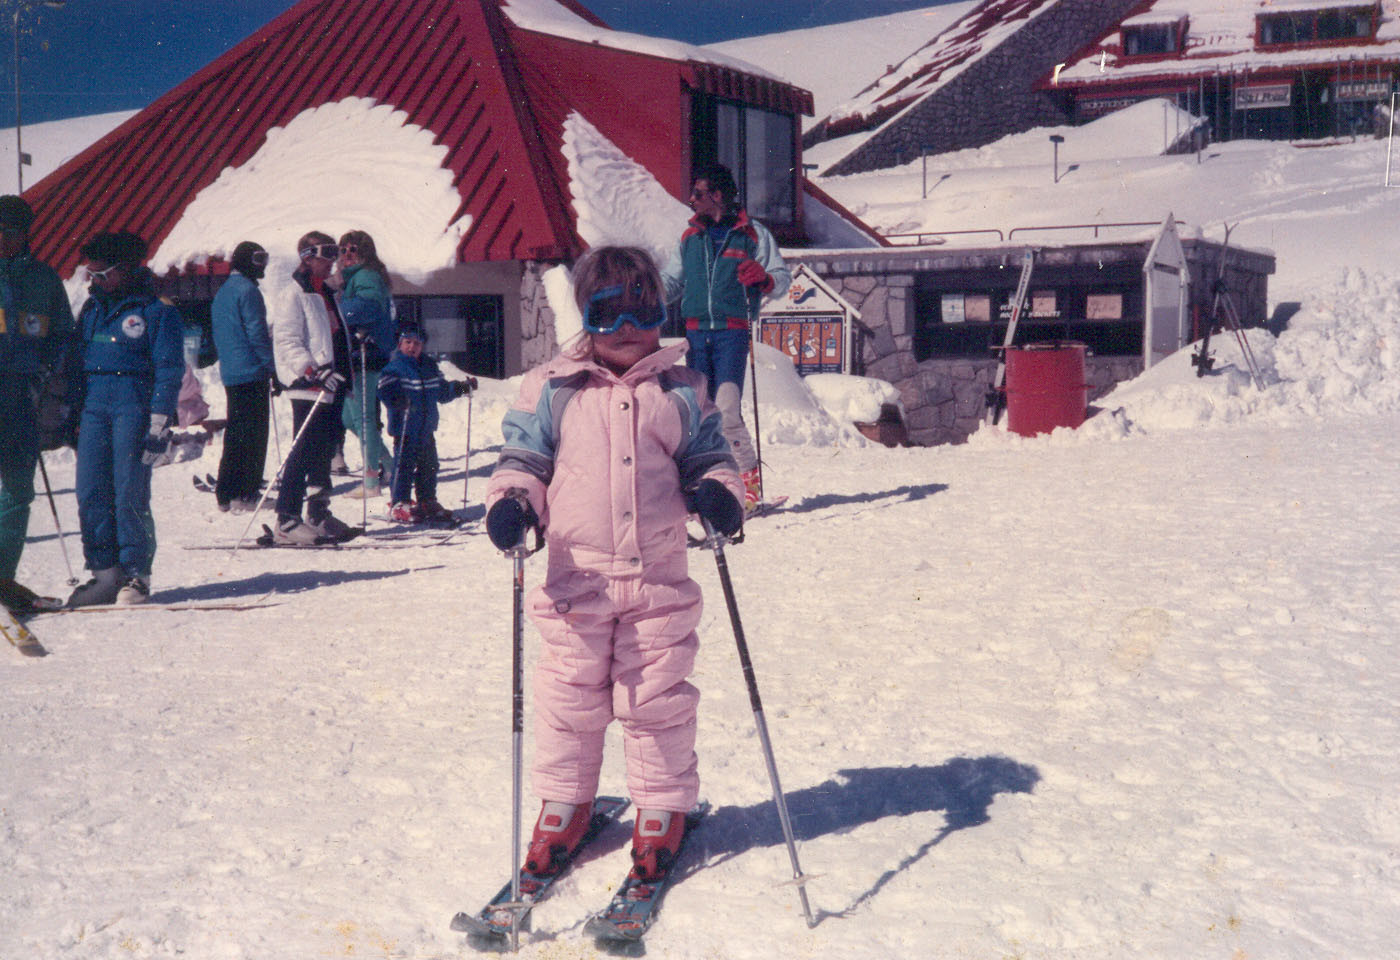 My first contact with snow and skiing